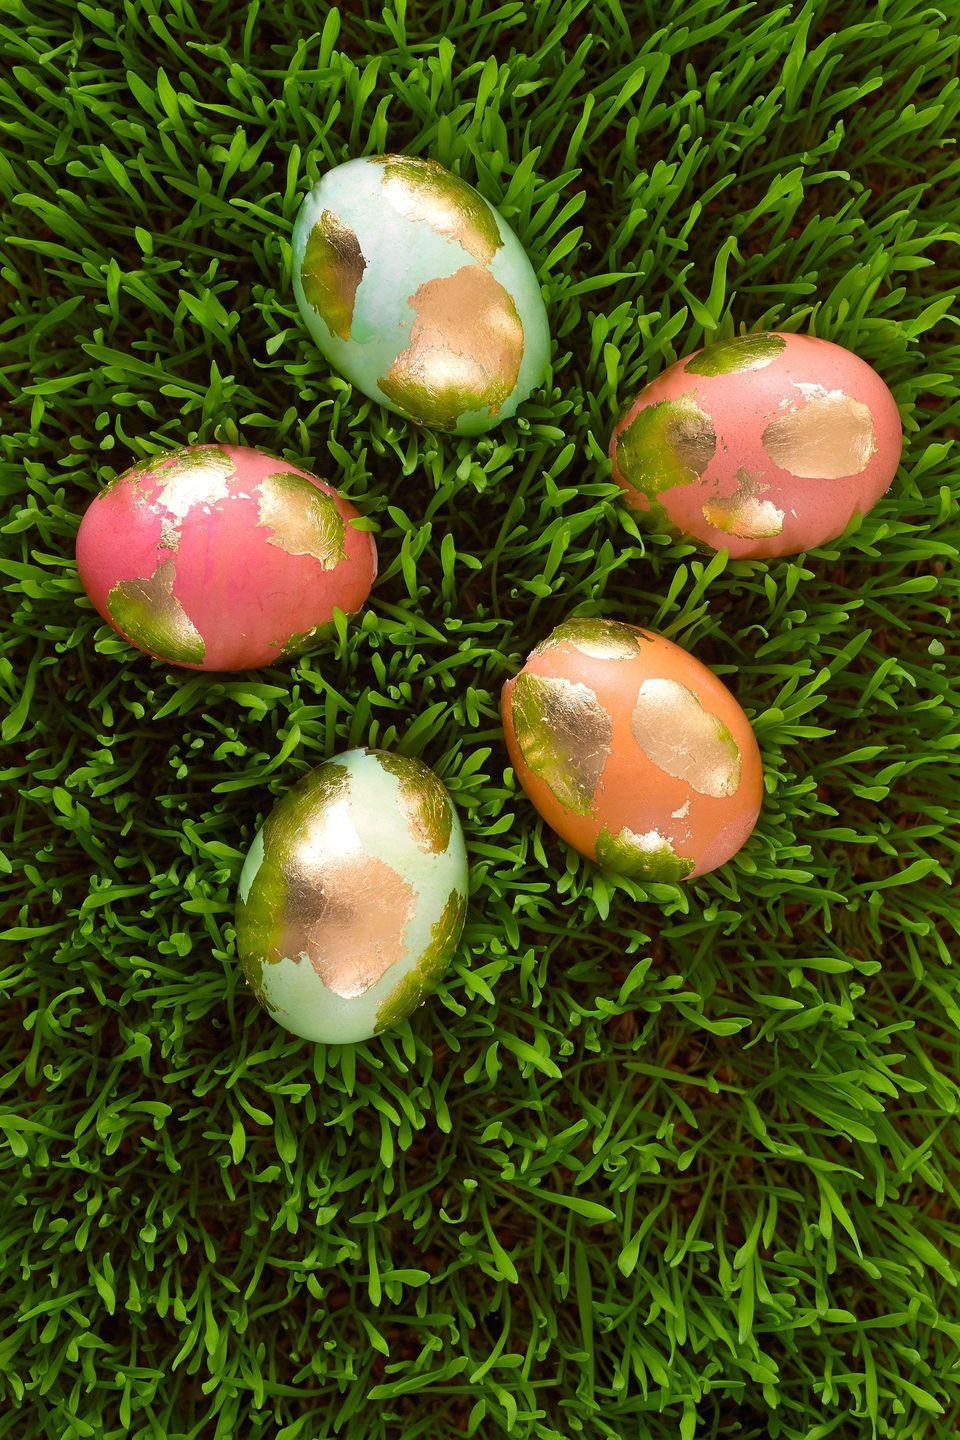 """<p><strong>1.</strong> Dye or paint eggs; let dry completely.</p><p><strong>2.</strong> Use a foam brush to paint abstract splotches of glue from the Mona Lisa Metal Leaf Starter Kit on the eggs; let dry according to package instructions. </p><p><strong>3.</strong> Apply the gold leaf from the kit to the sticky areas (the glue is tacky when it dries) and smooth down with your fingers.</p><p><strong>4.</strong> Use a stiff-bristled brush to sweep away any gold leaf around the egg where there was no adhesive.</p><p><strong><a class=""""link rapid-noclick-resp"""" href=""""https://www.amazon.com/Speedball-Mona-Lisa-Gold-Leaf/dp/B002NQ7RZA/?tag=syn-yahoo-20&ascsubtag=%5Bartid%7C10070.g.1751%5Bsrc%7Cyahoo-us"""" rel=""""nofollow noopener"""" target=""""_blank"""" data-ylk=""""slk:SHOP GOLD LEAF"""">SHOP GOLD LEAF</a></strong></p>"""